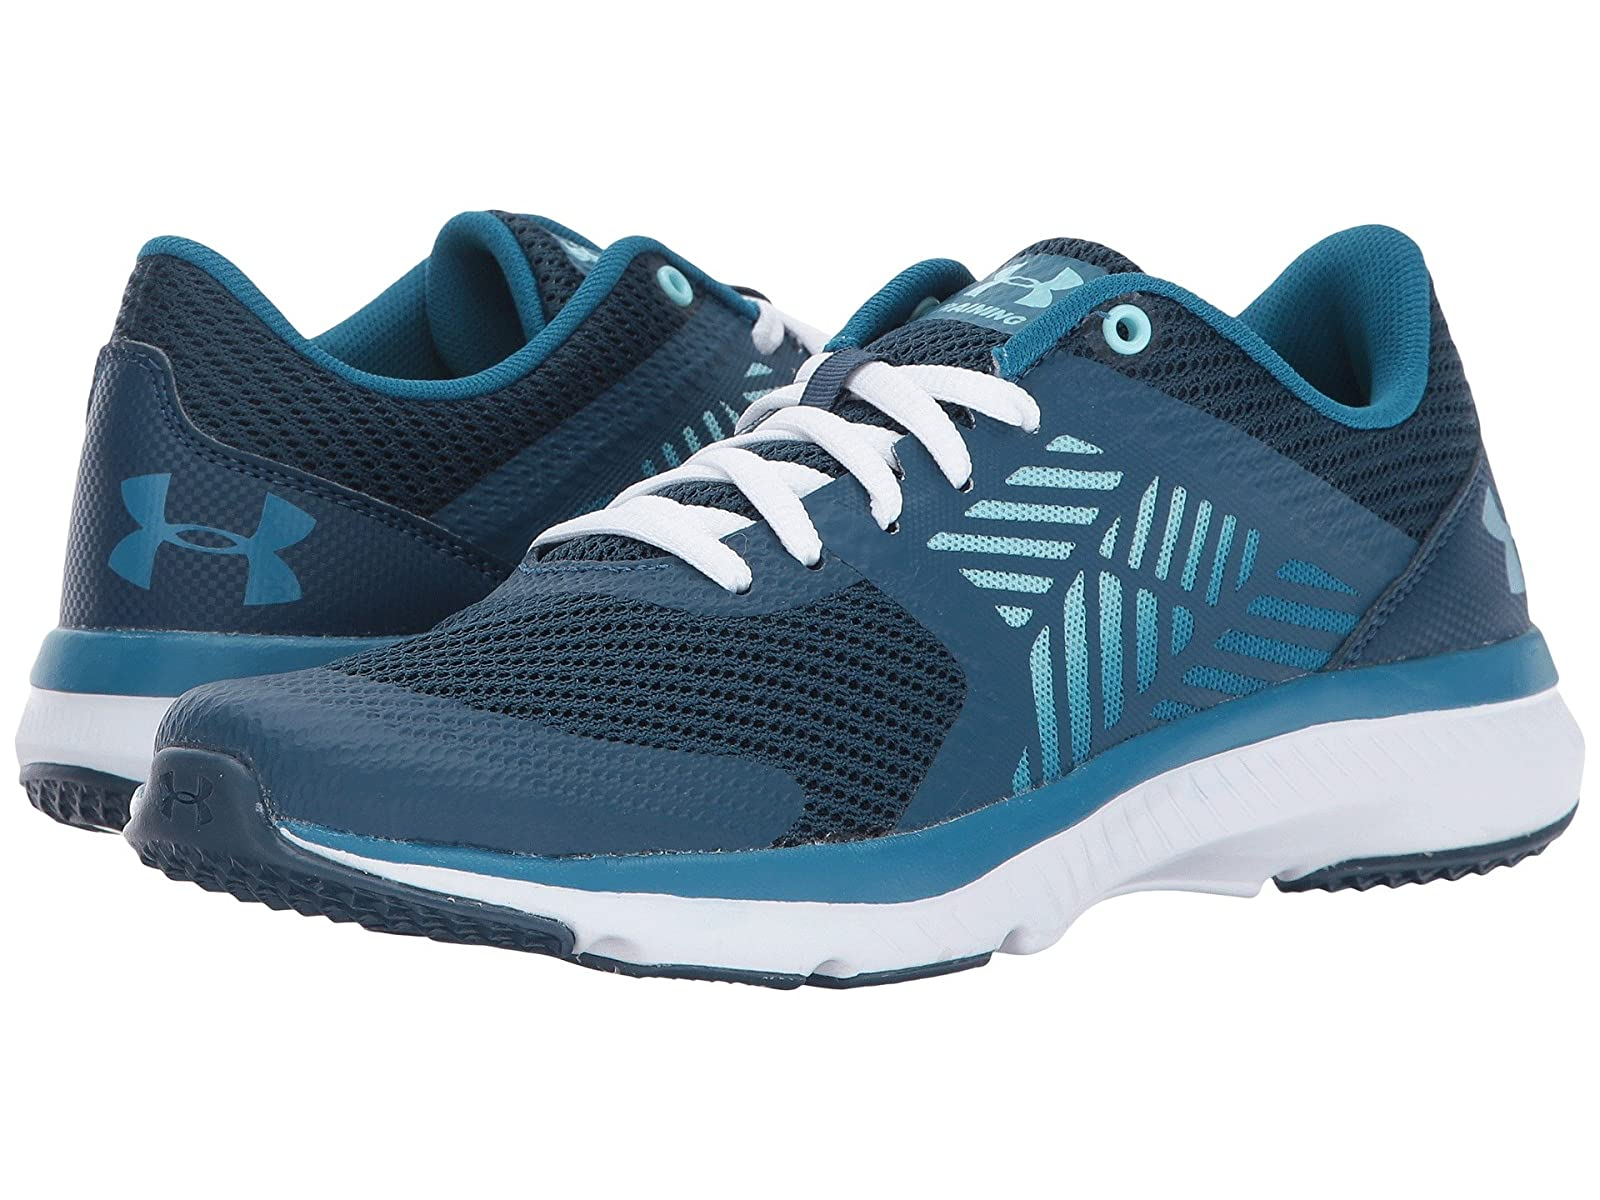 Under Armour UA Micro G Press TRCheap and distinctive eye-catching shoes